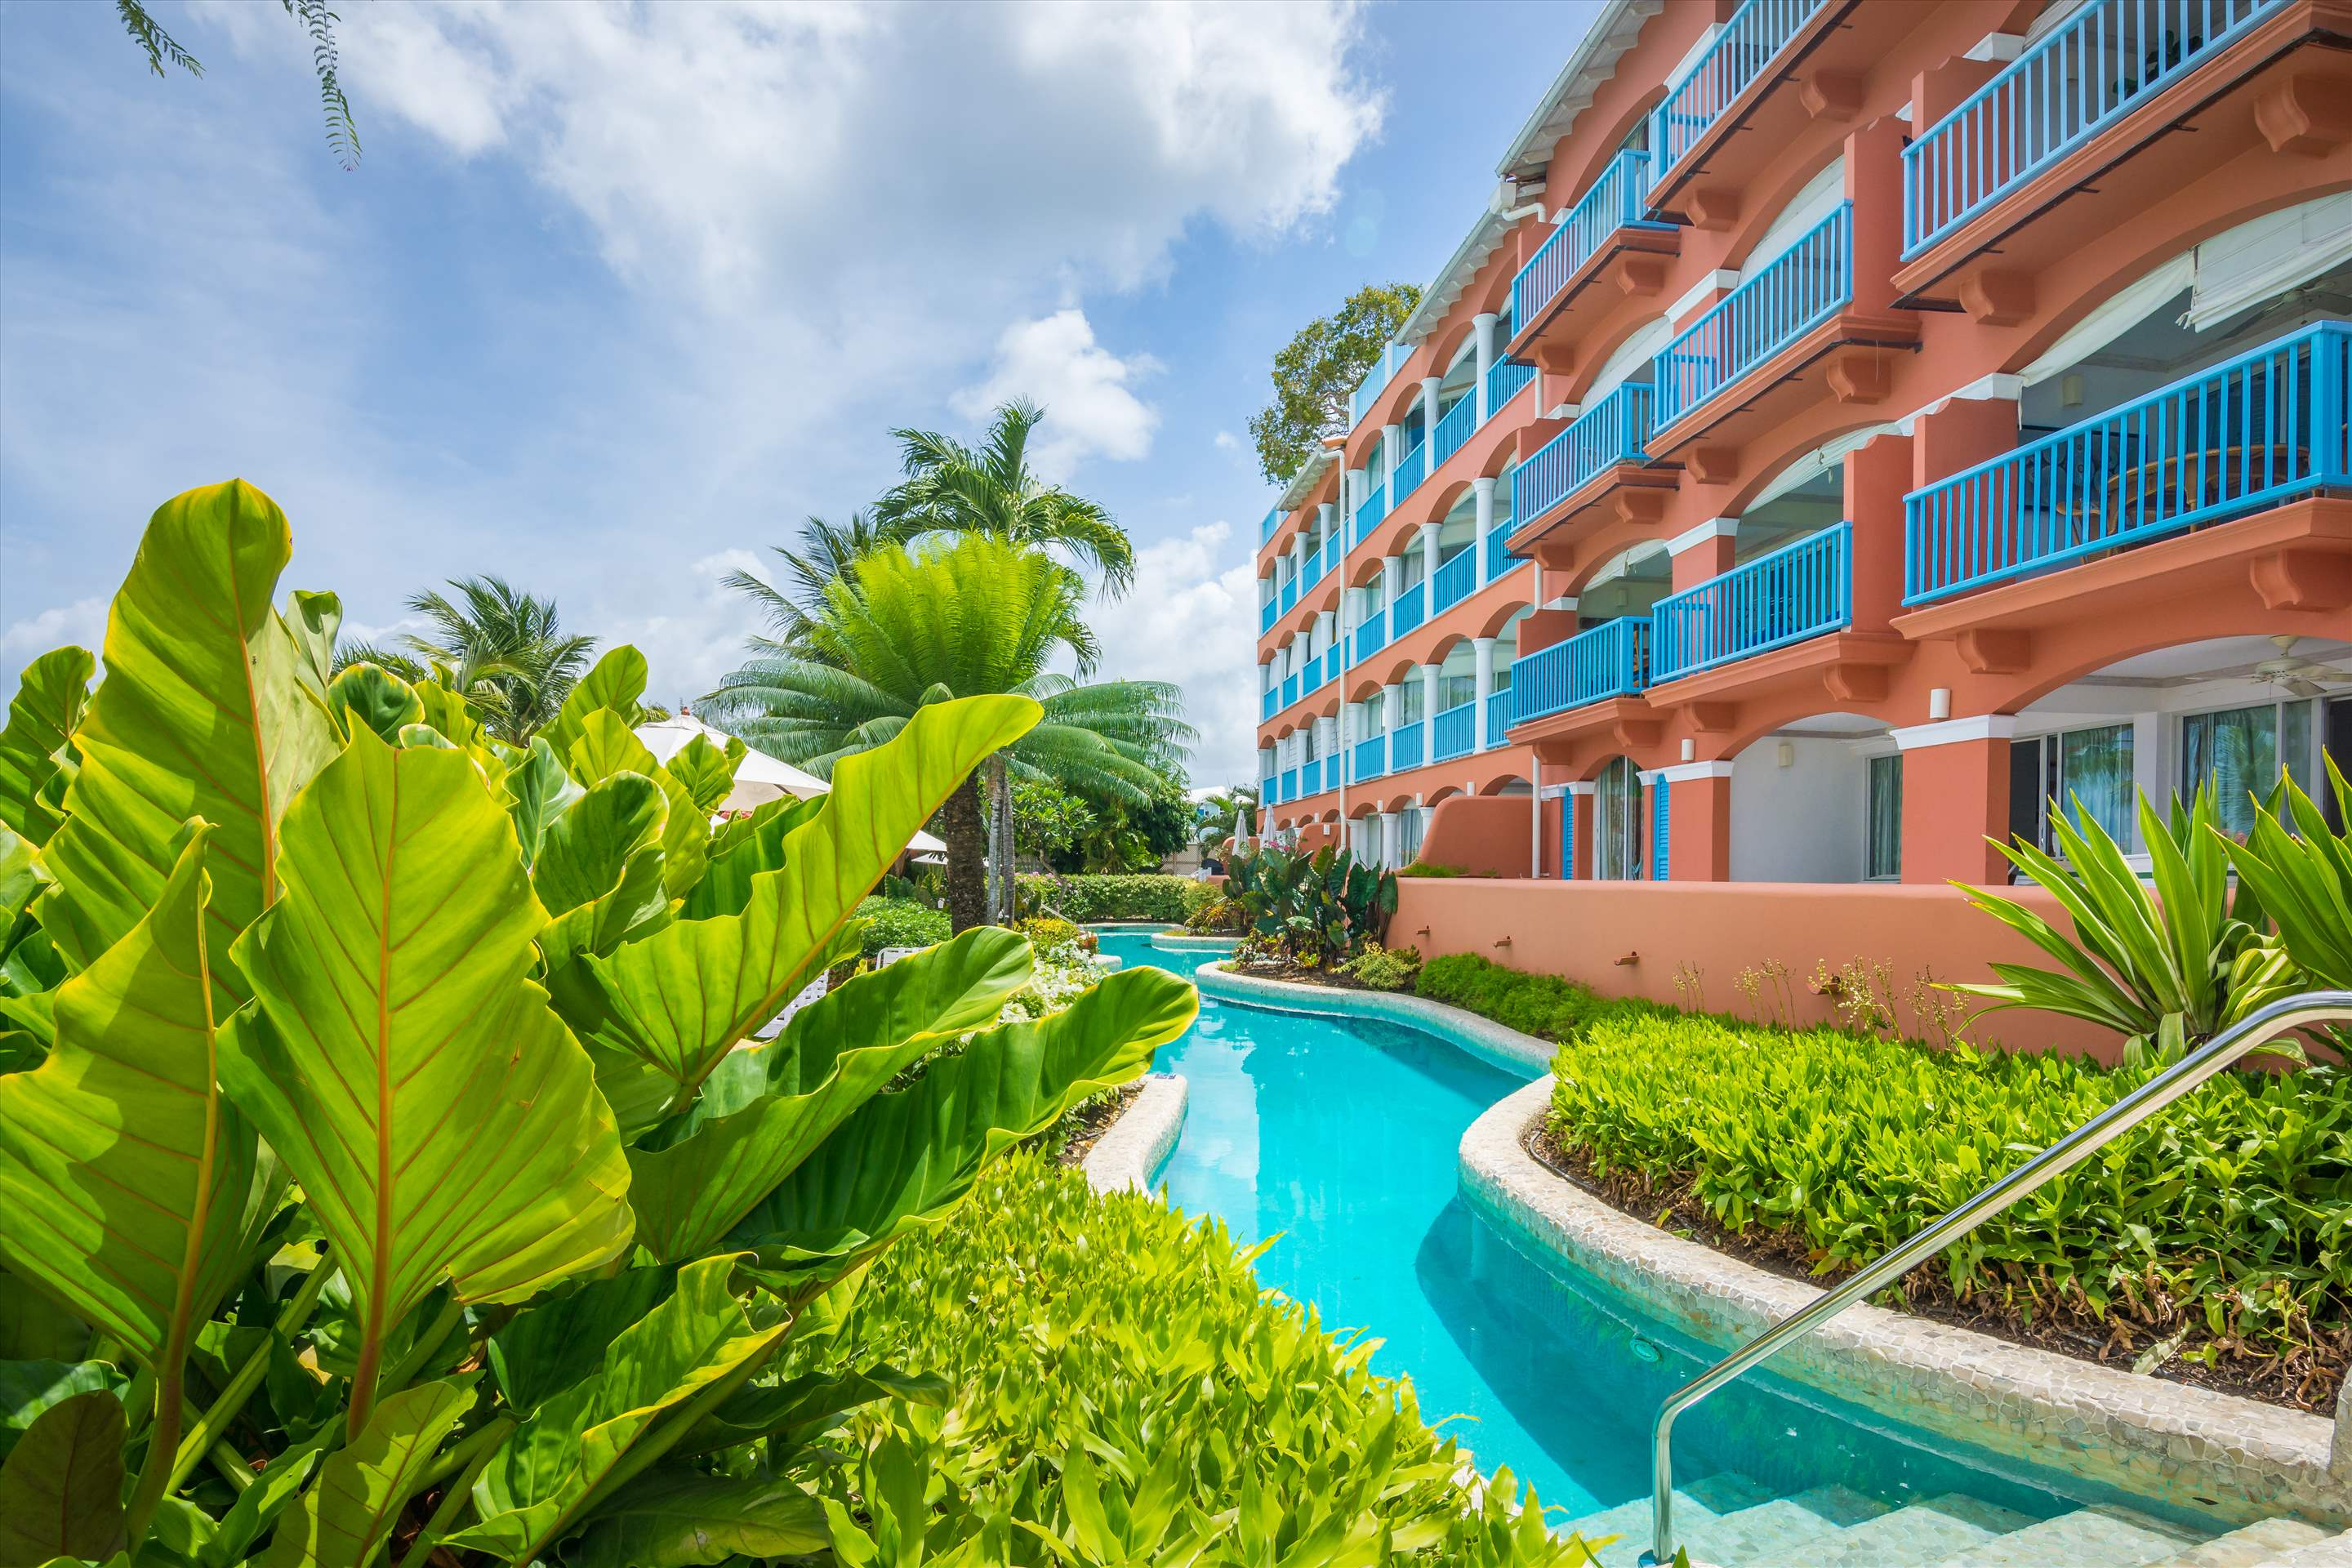 Villas on the Beach 201 , 3 bedroom, 3 bedroom apartment in St. James & West Coast, Barbados Photo #1